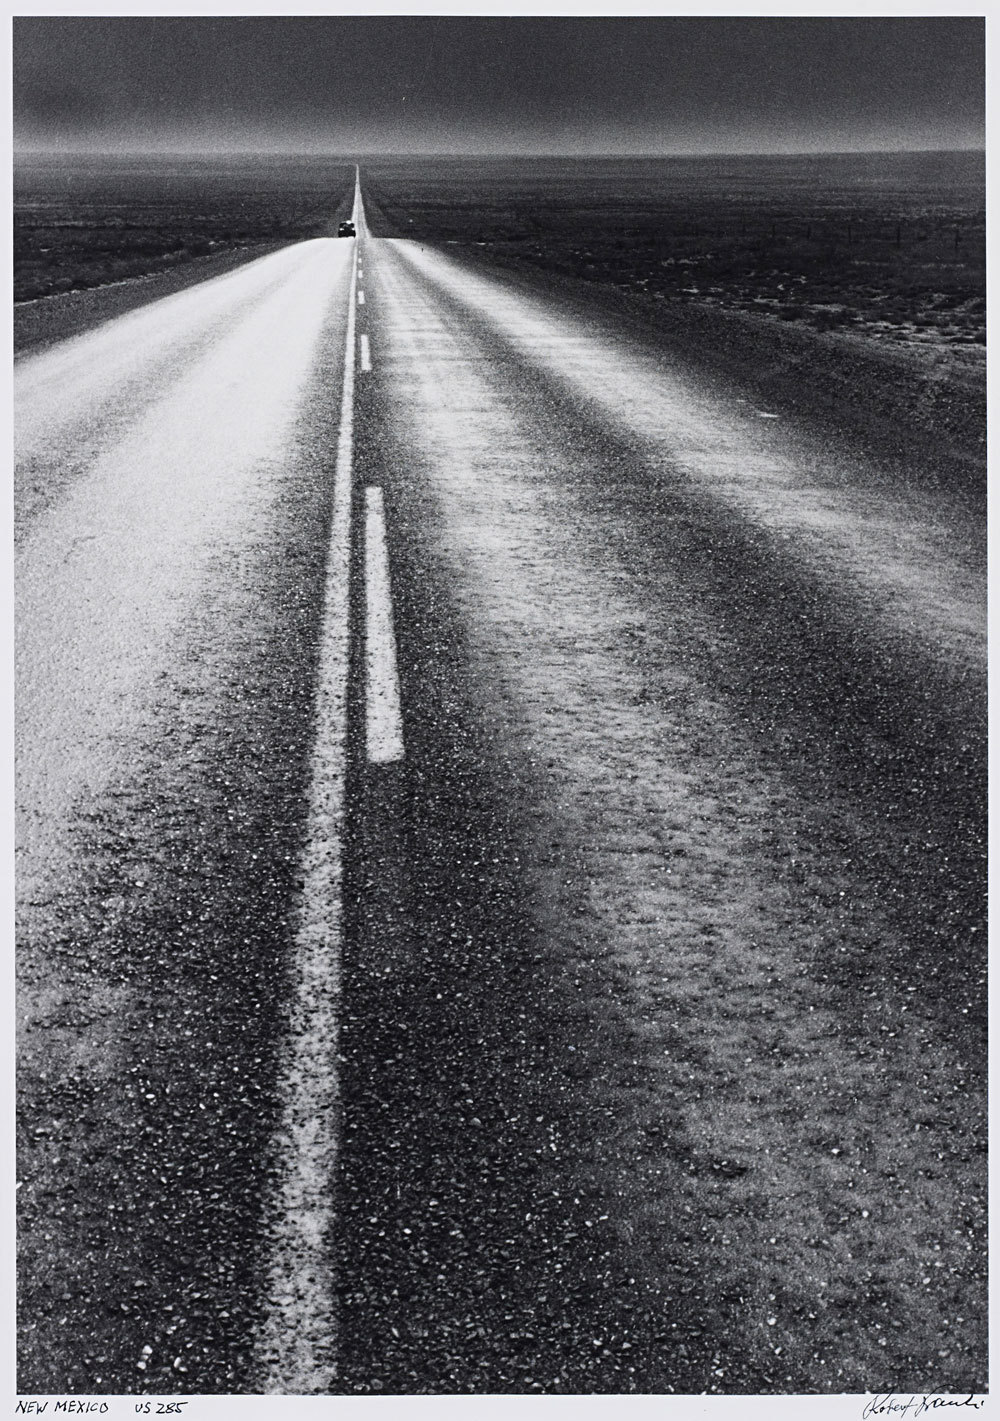 ROBERT FRANK | U.S. 285, New Mexico, 1955 | Gelatin silver print, printed later  Sold for £43,250 at the Photographs sale, 8 November 2012, London.